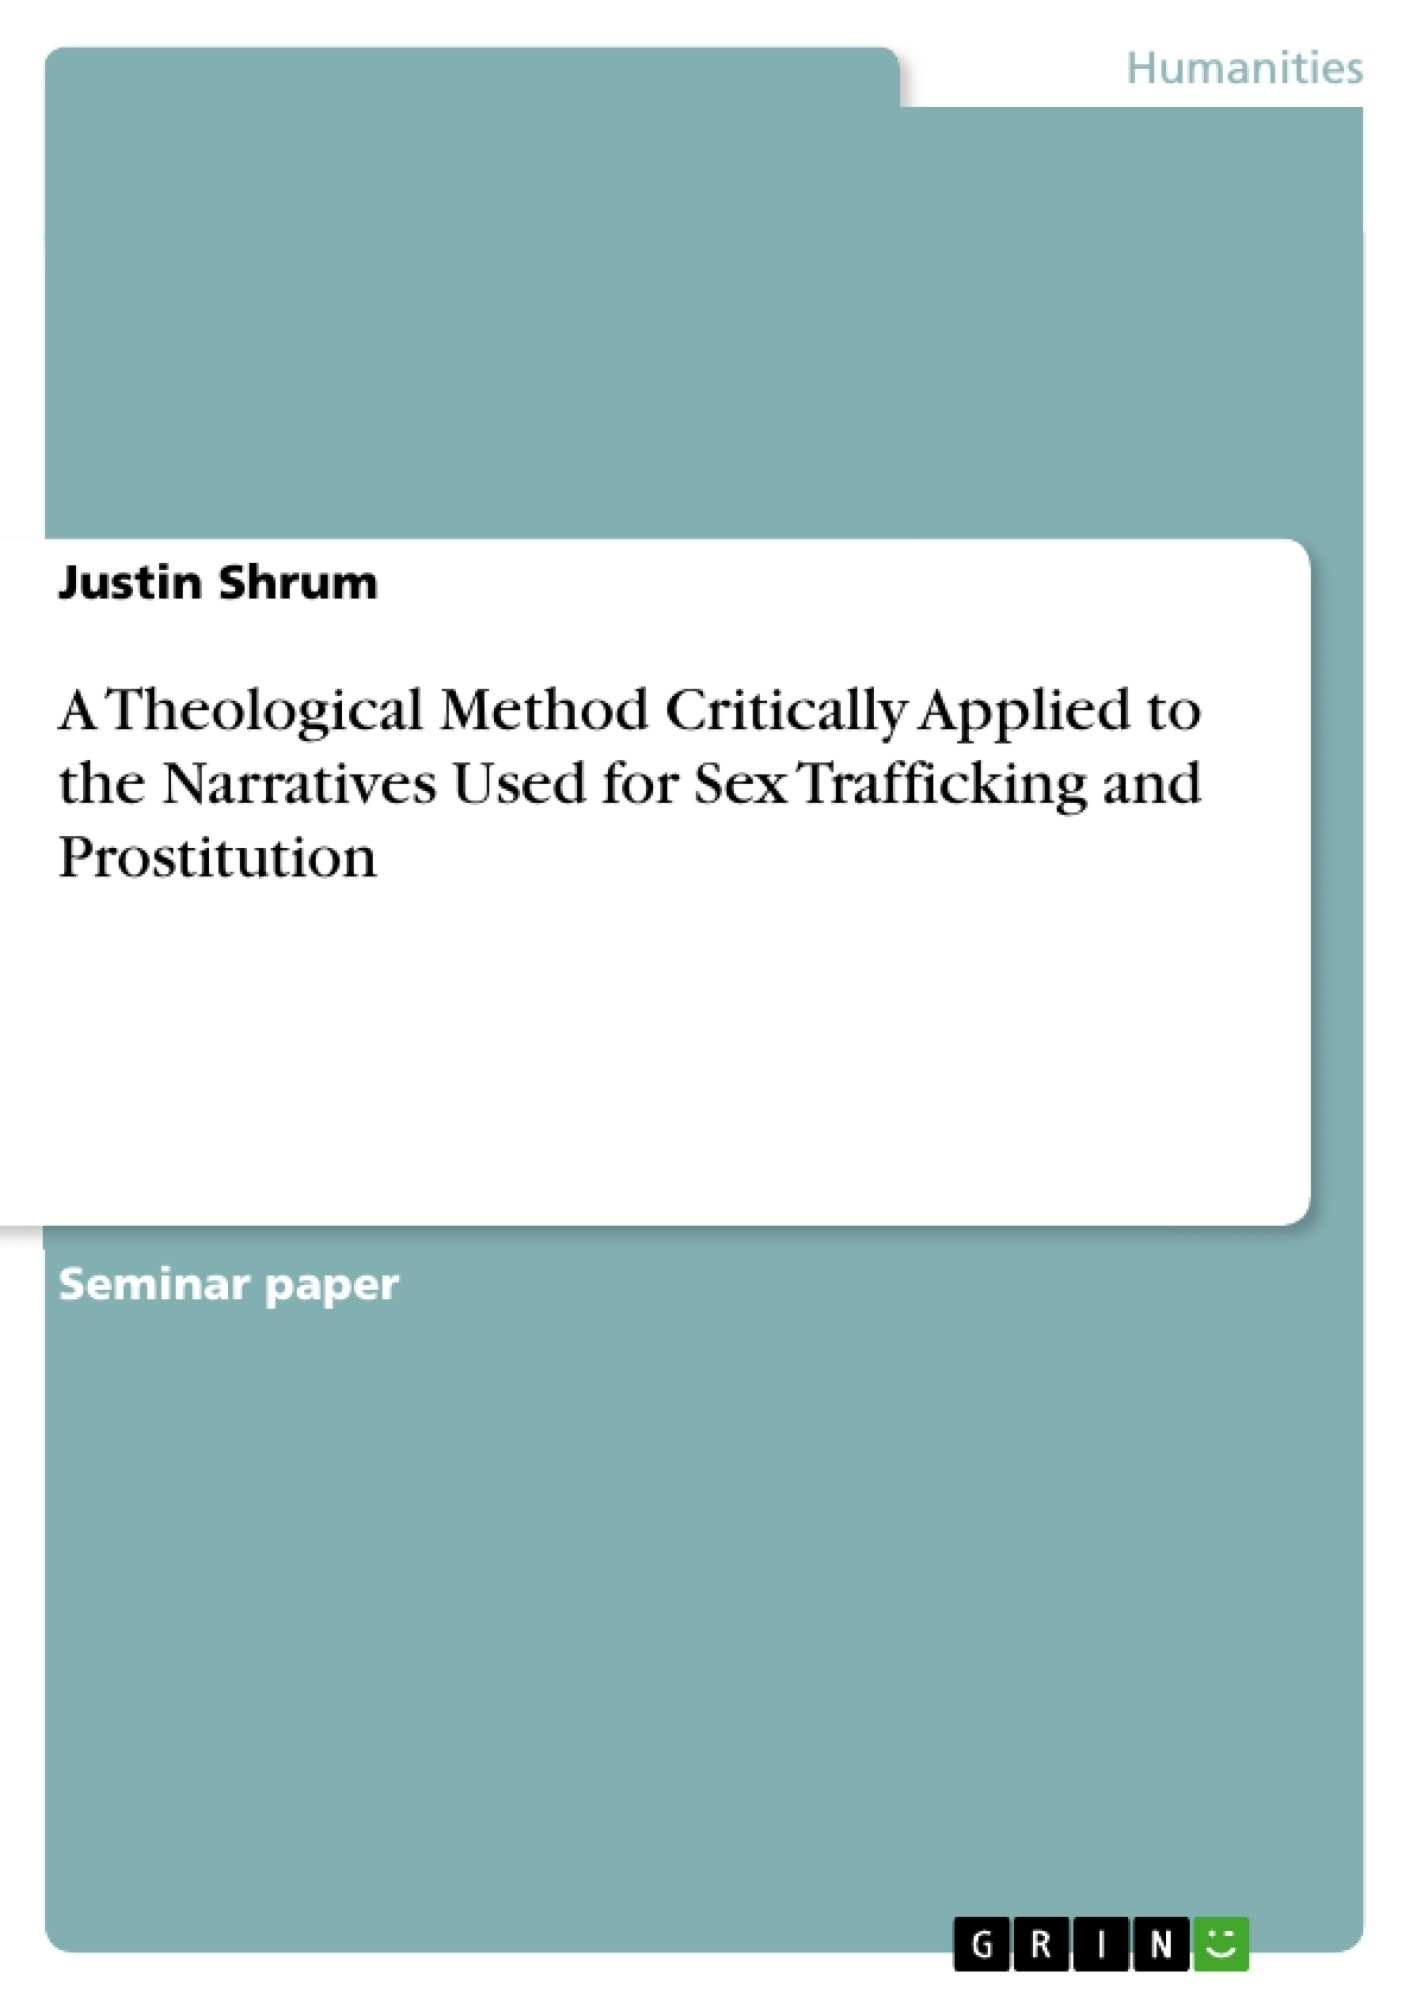 Title: A Theological Method Critically Applied to the Narratives Used for Sex Trafficking and Prostitution